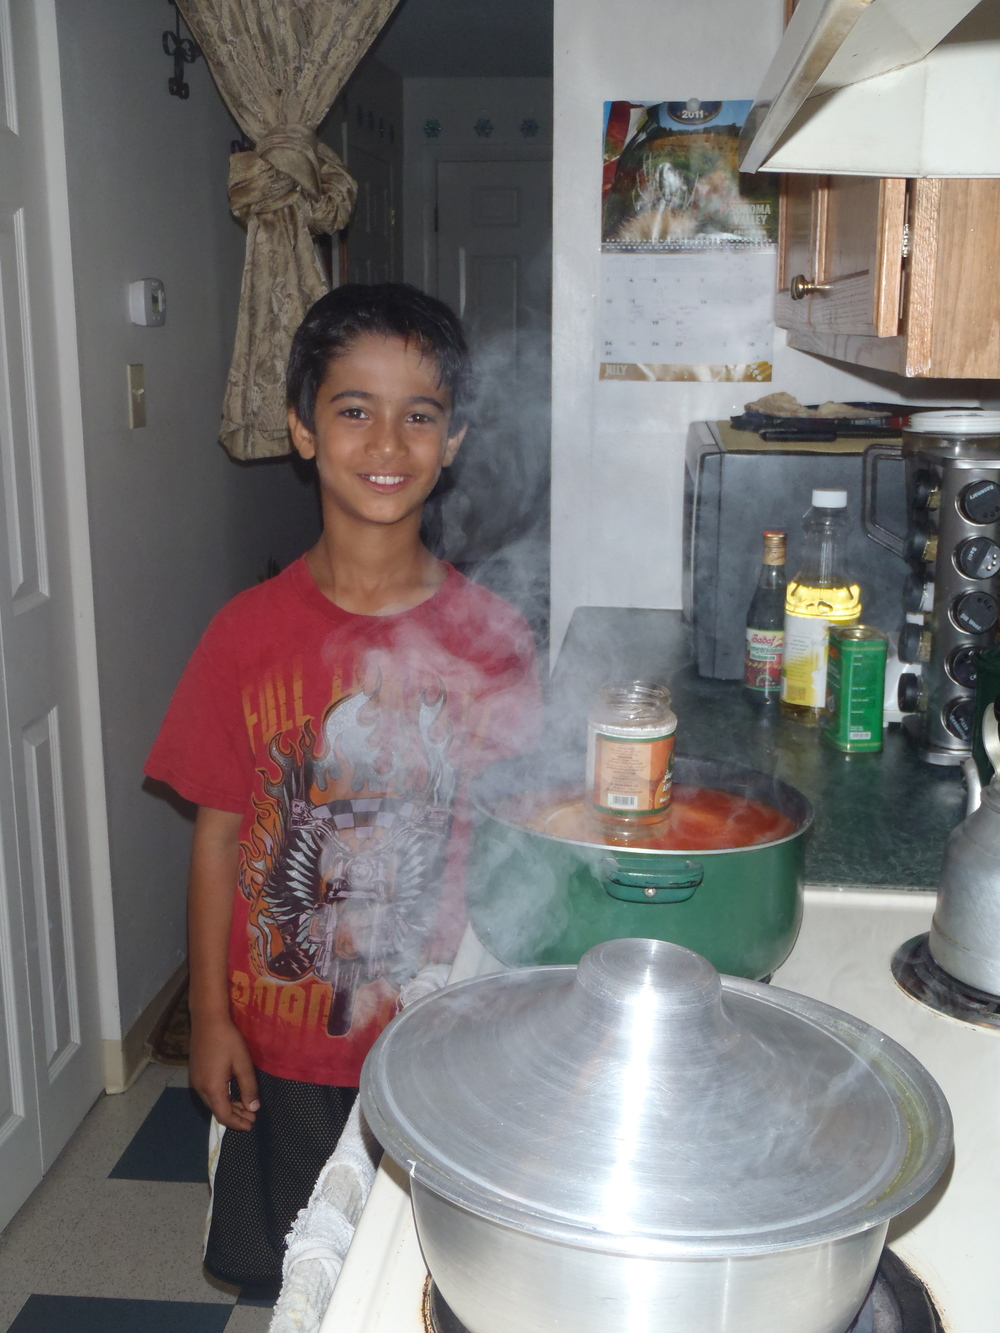 This is Omar, my ten-year-old translator. He was very proud of his mother's cooking.